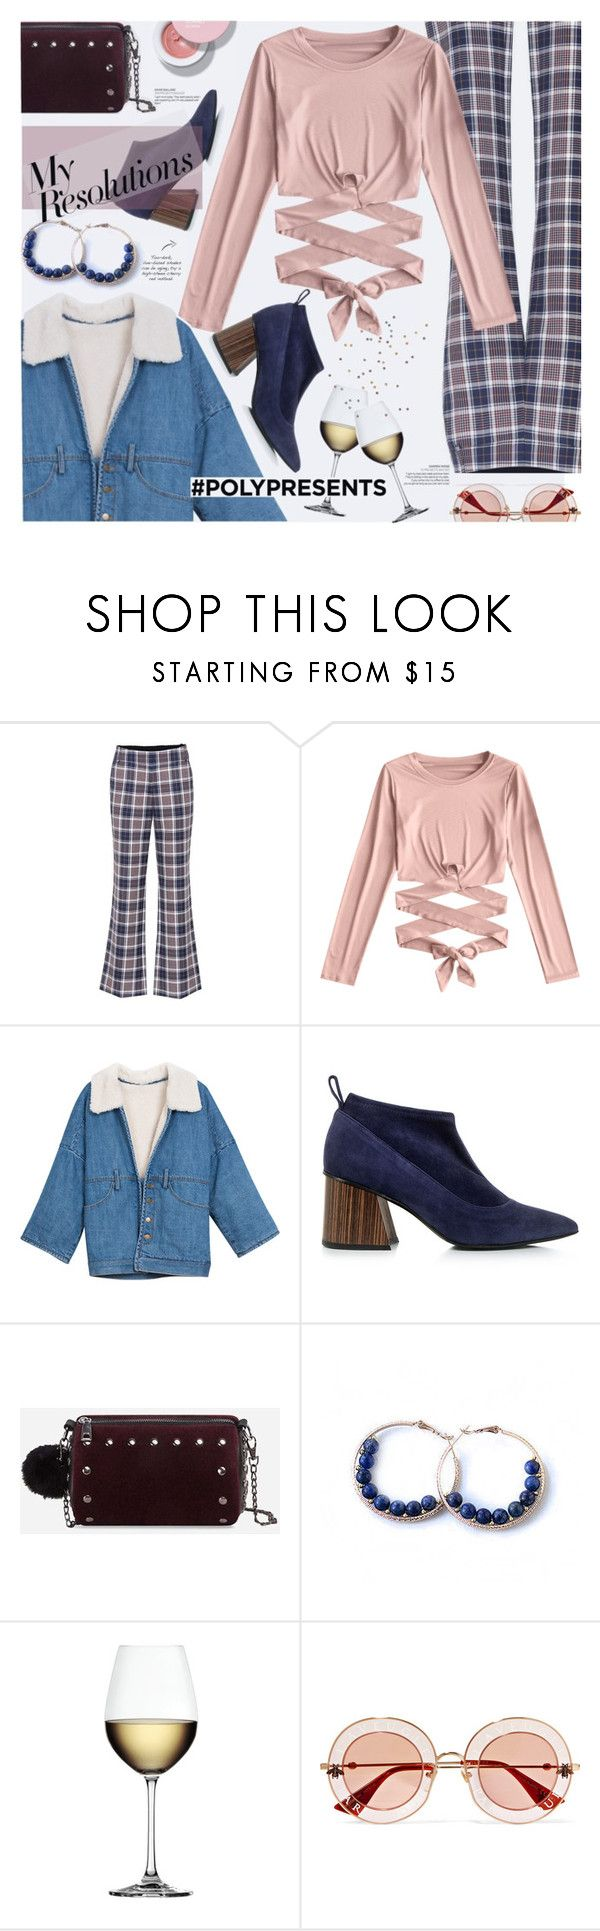 """""""#PolyPresents: New Year's Resolutions"""" by imurzilkina ❤ liked on Polyvore featuring Tory Burch, Eugenia Kim, Nachtmann, Gucci, contestentry and polyPresents"""